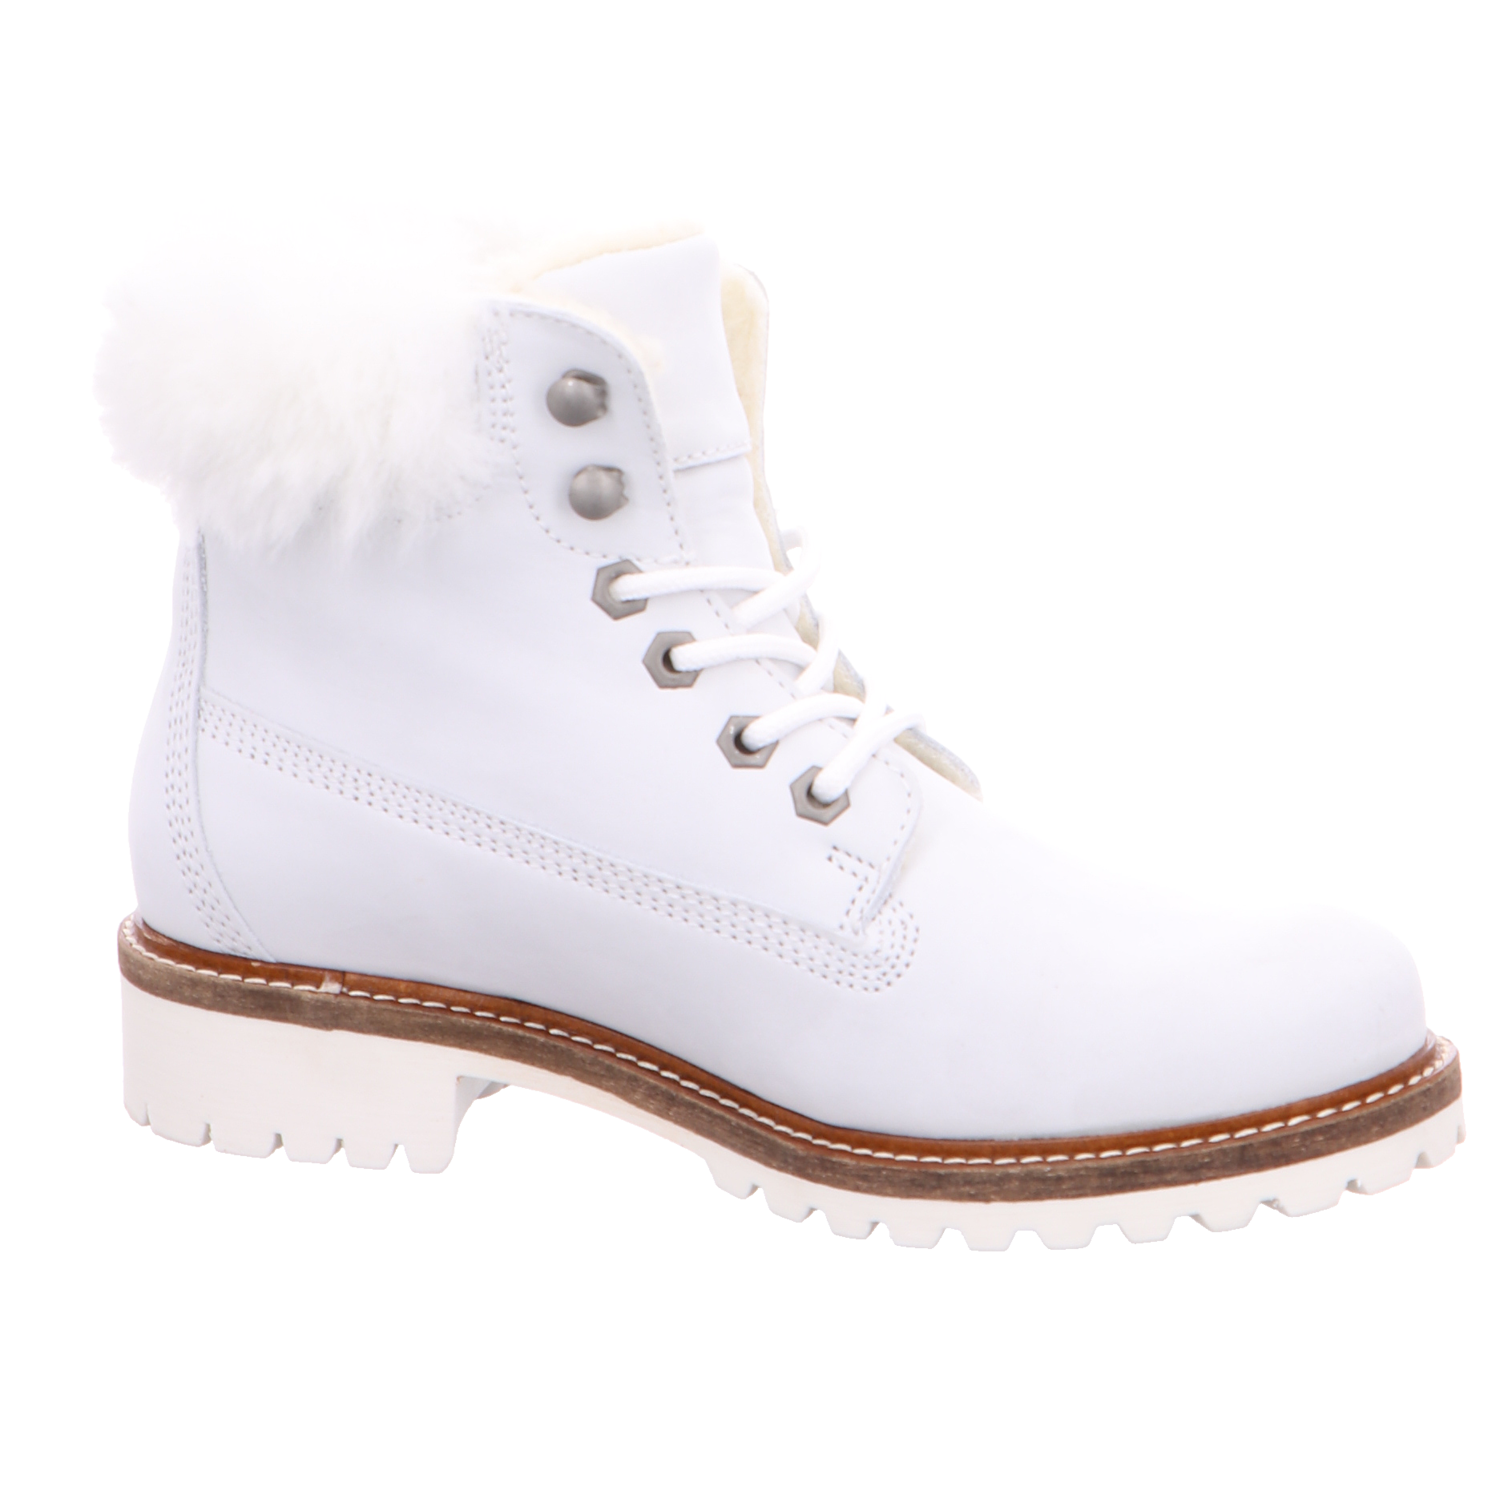 Tamaris 1-26244-29-114 white Leather yOpK7AYHNL